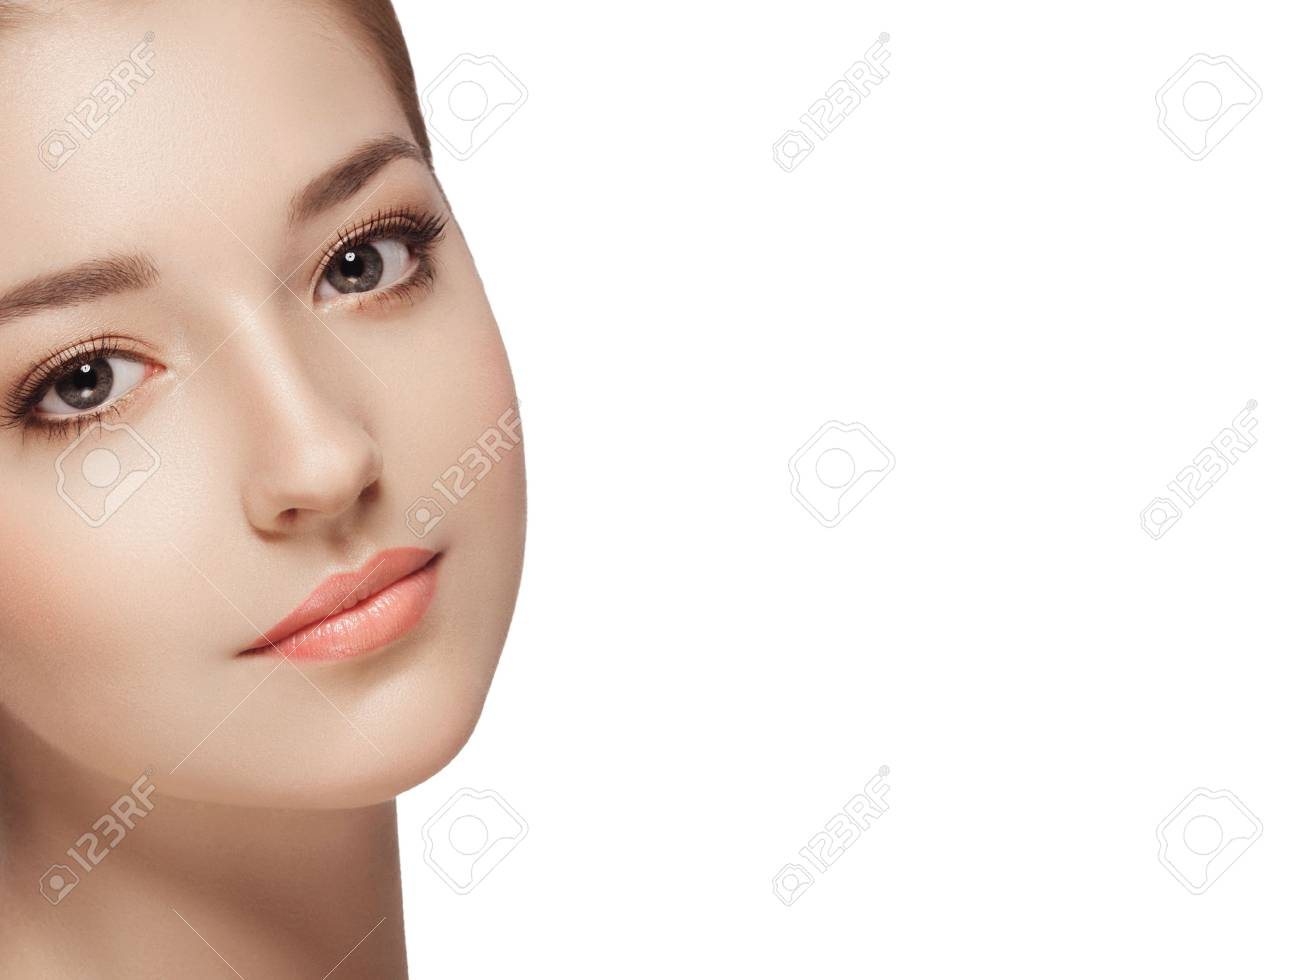 Beauty Woman face Portrait. Isolated white background - 62414630